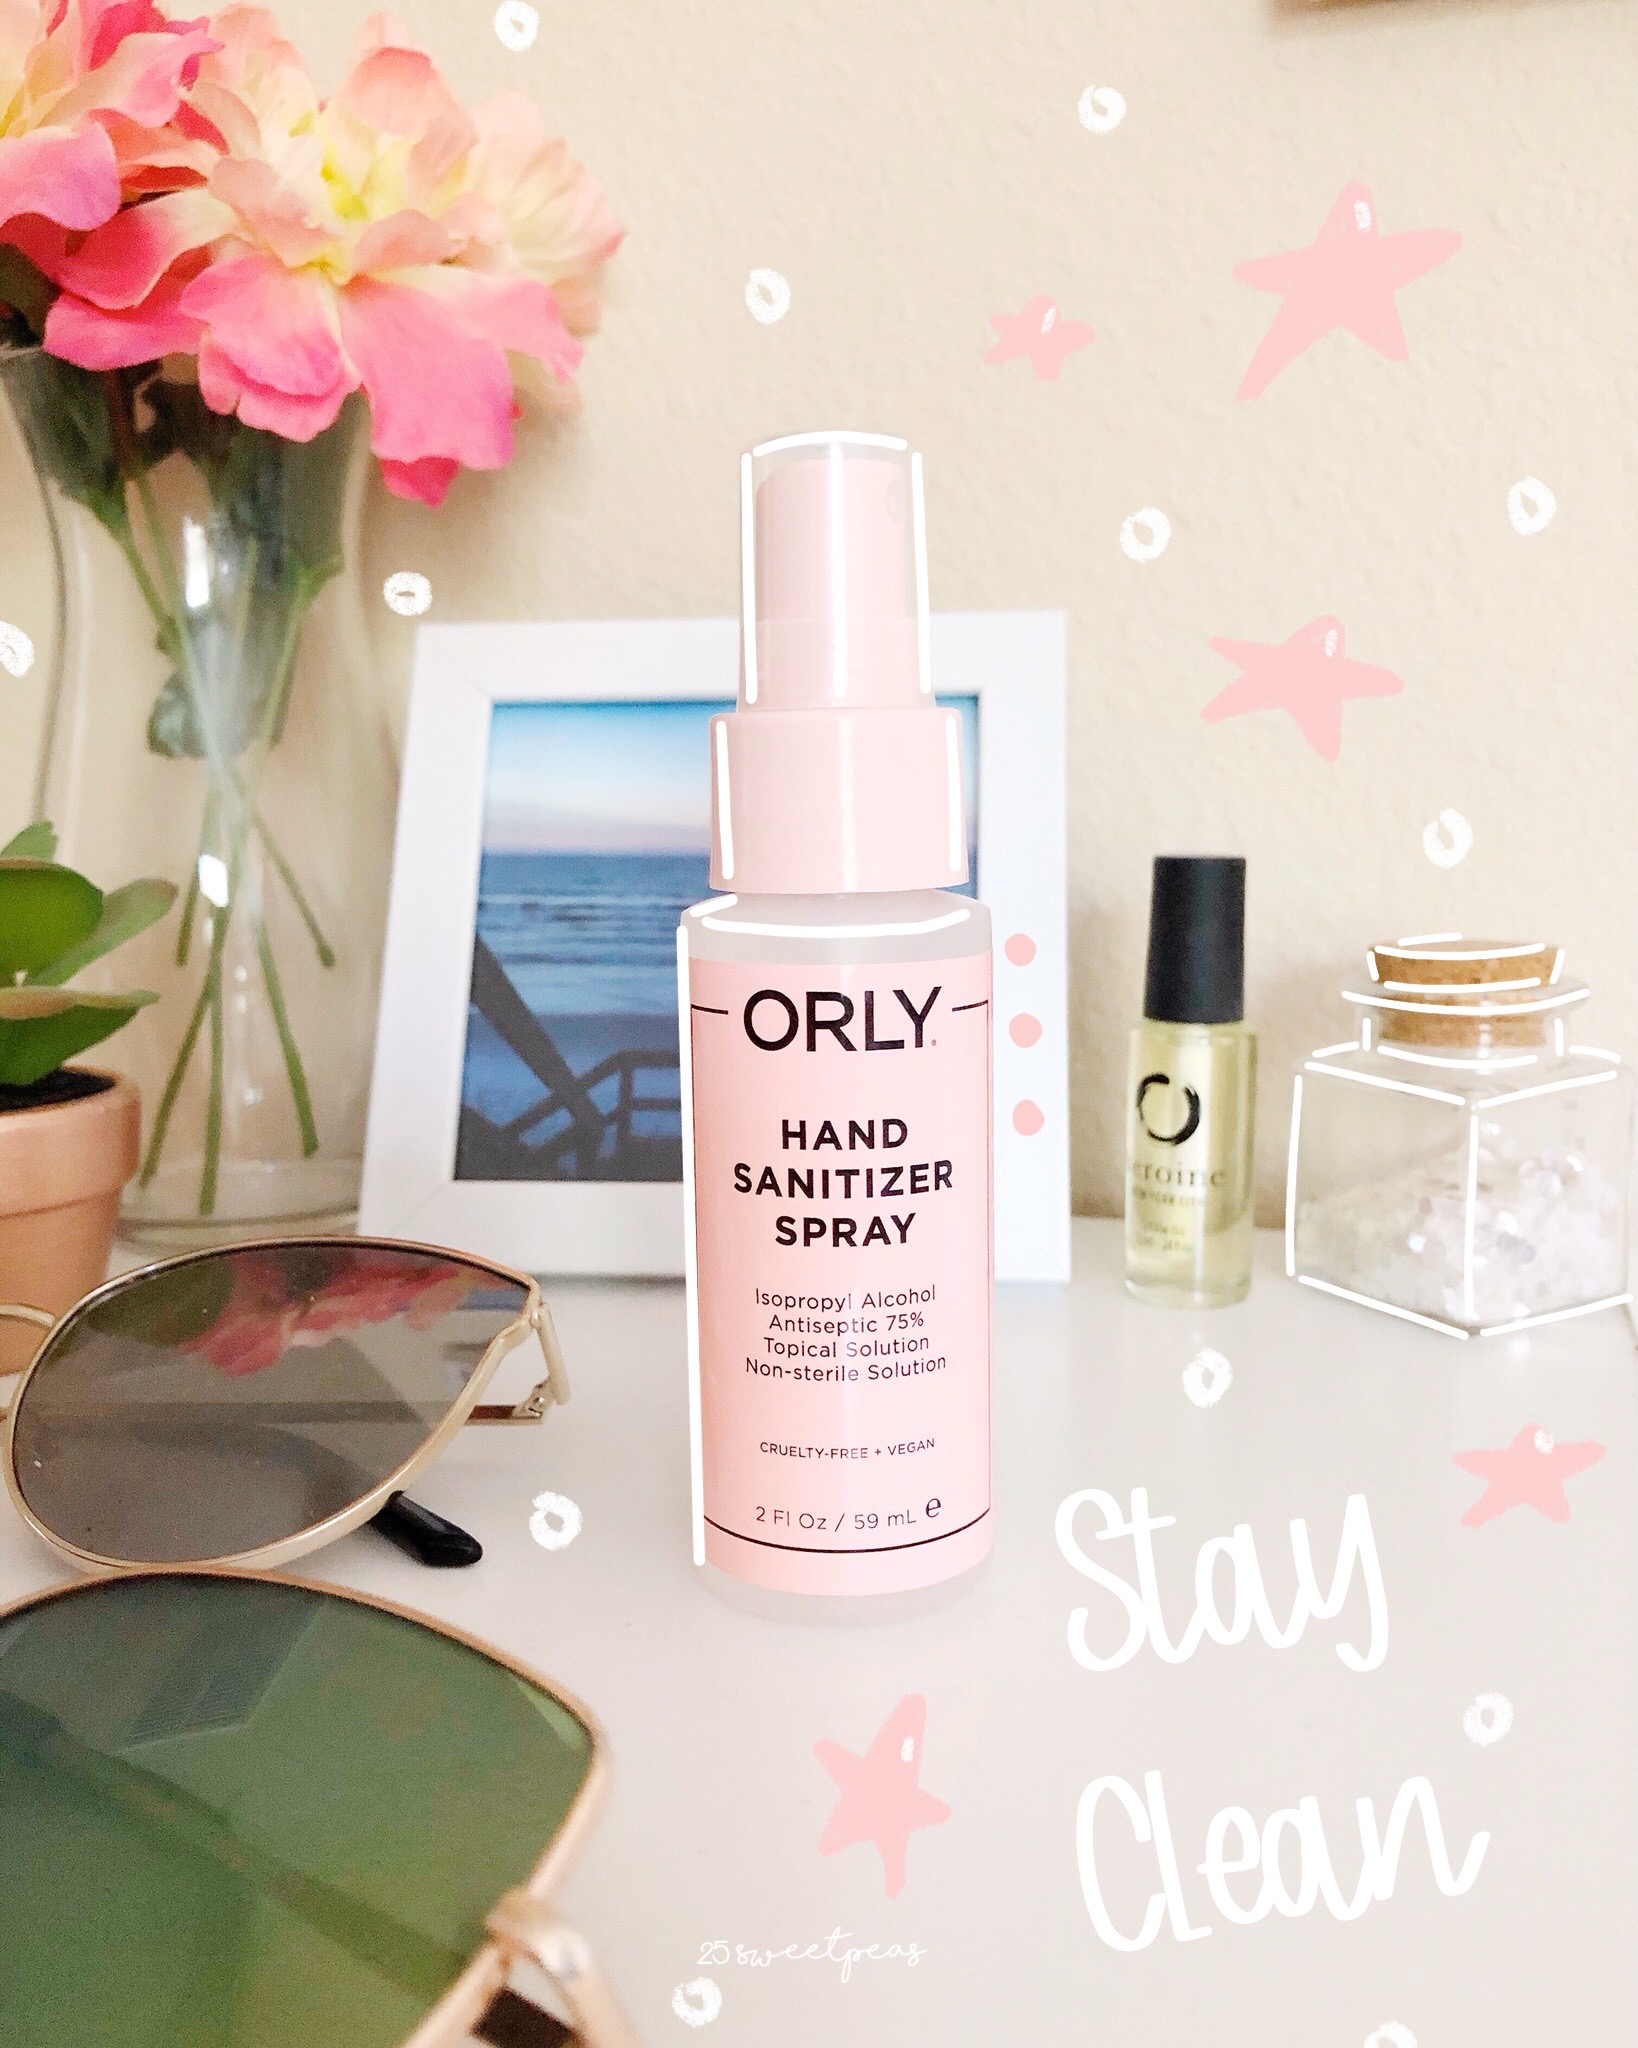 Orly Sanitizer